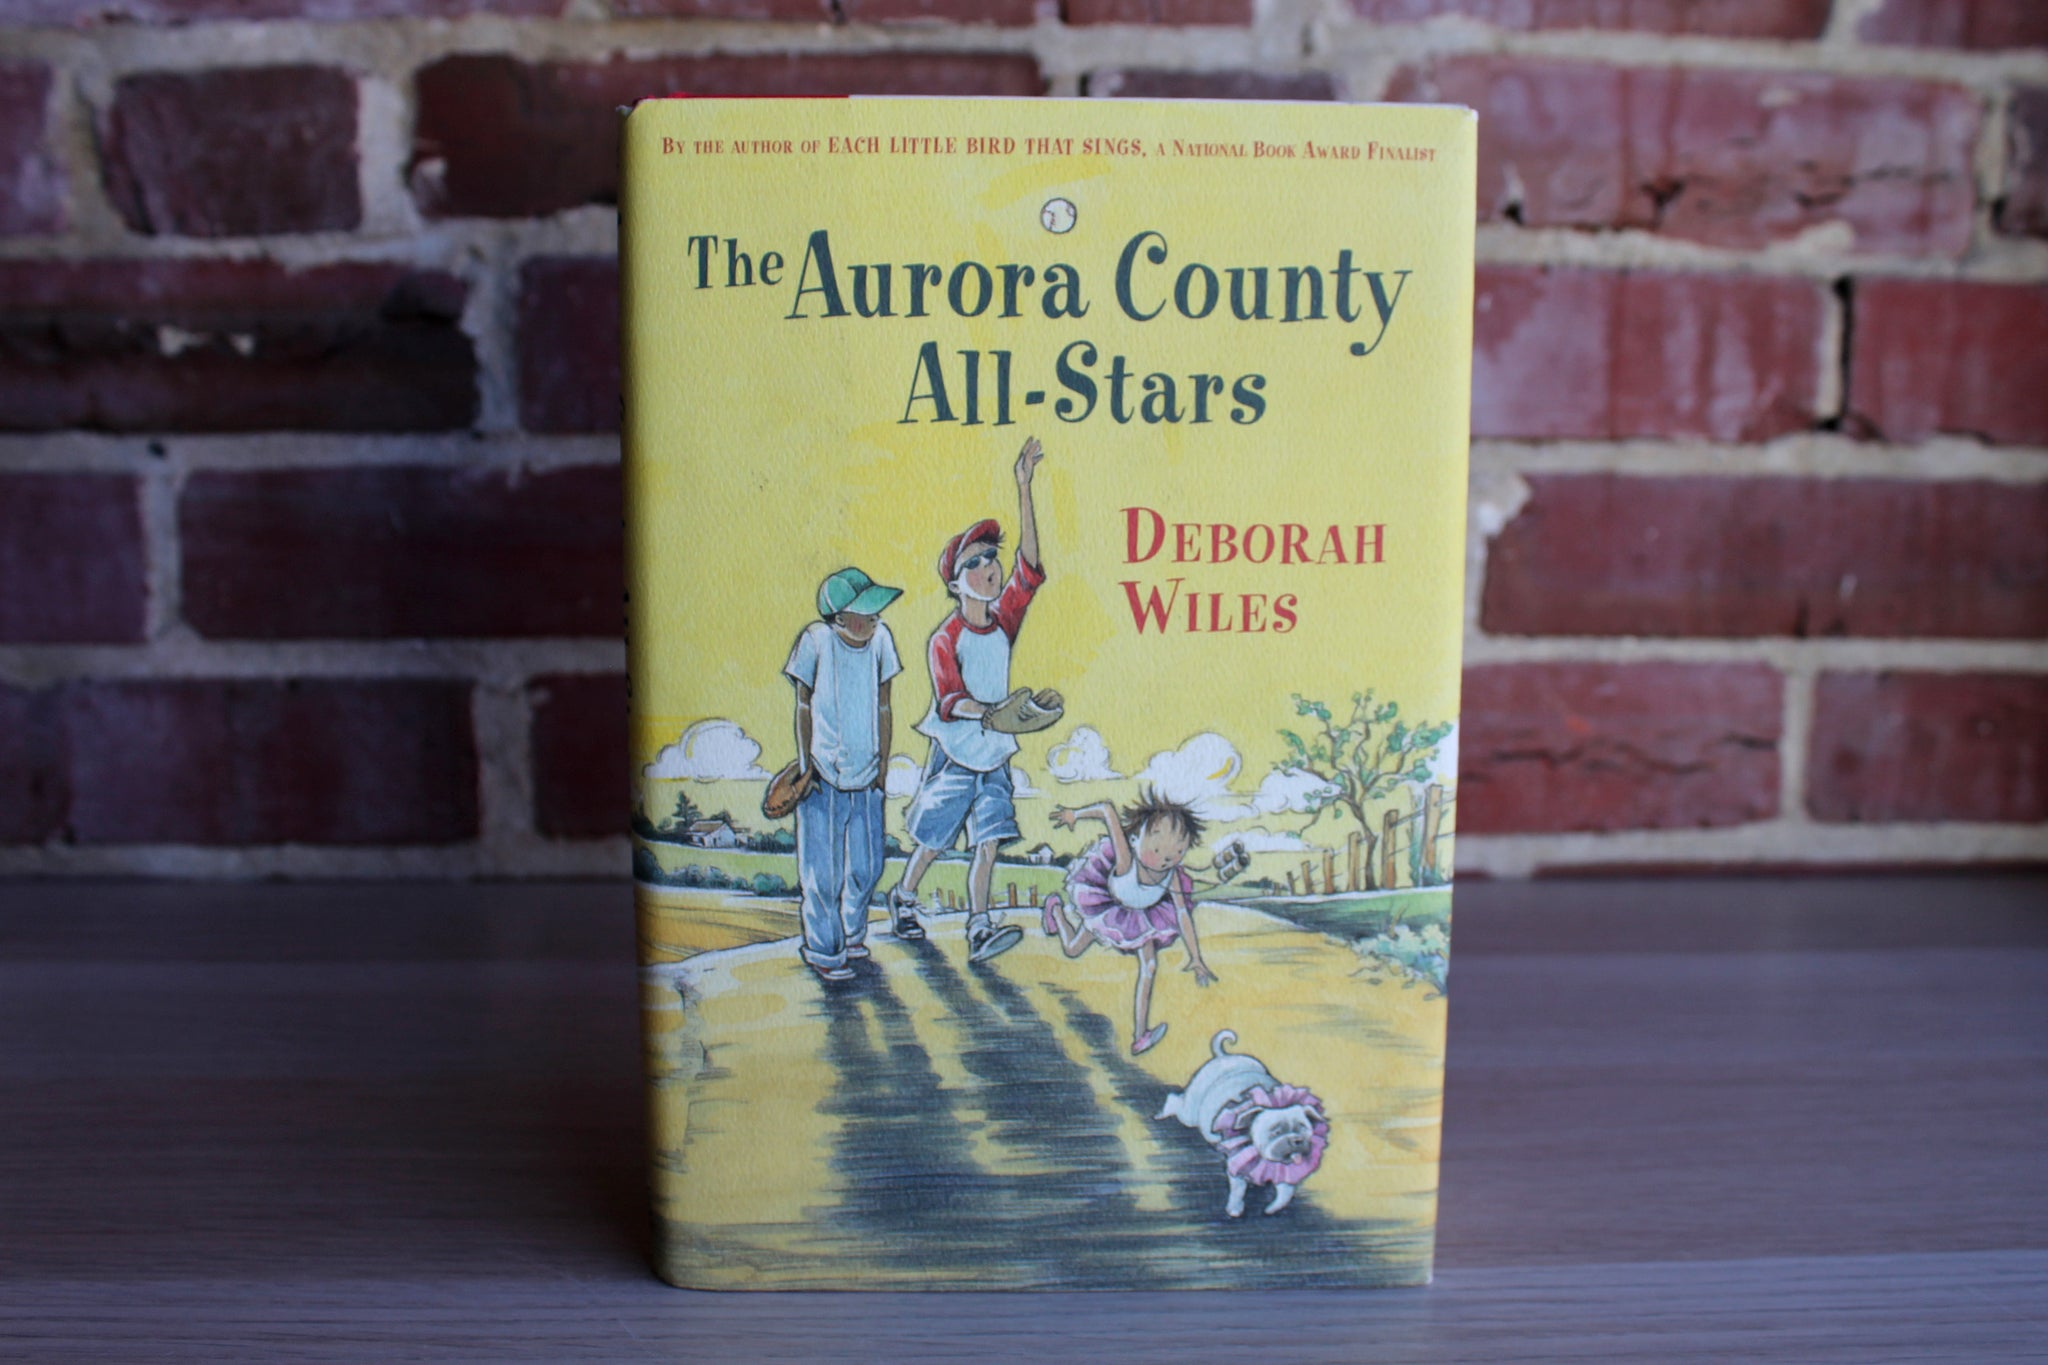 The Aurora County All-Stars by Deborah Wiles